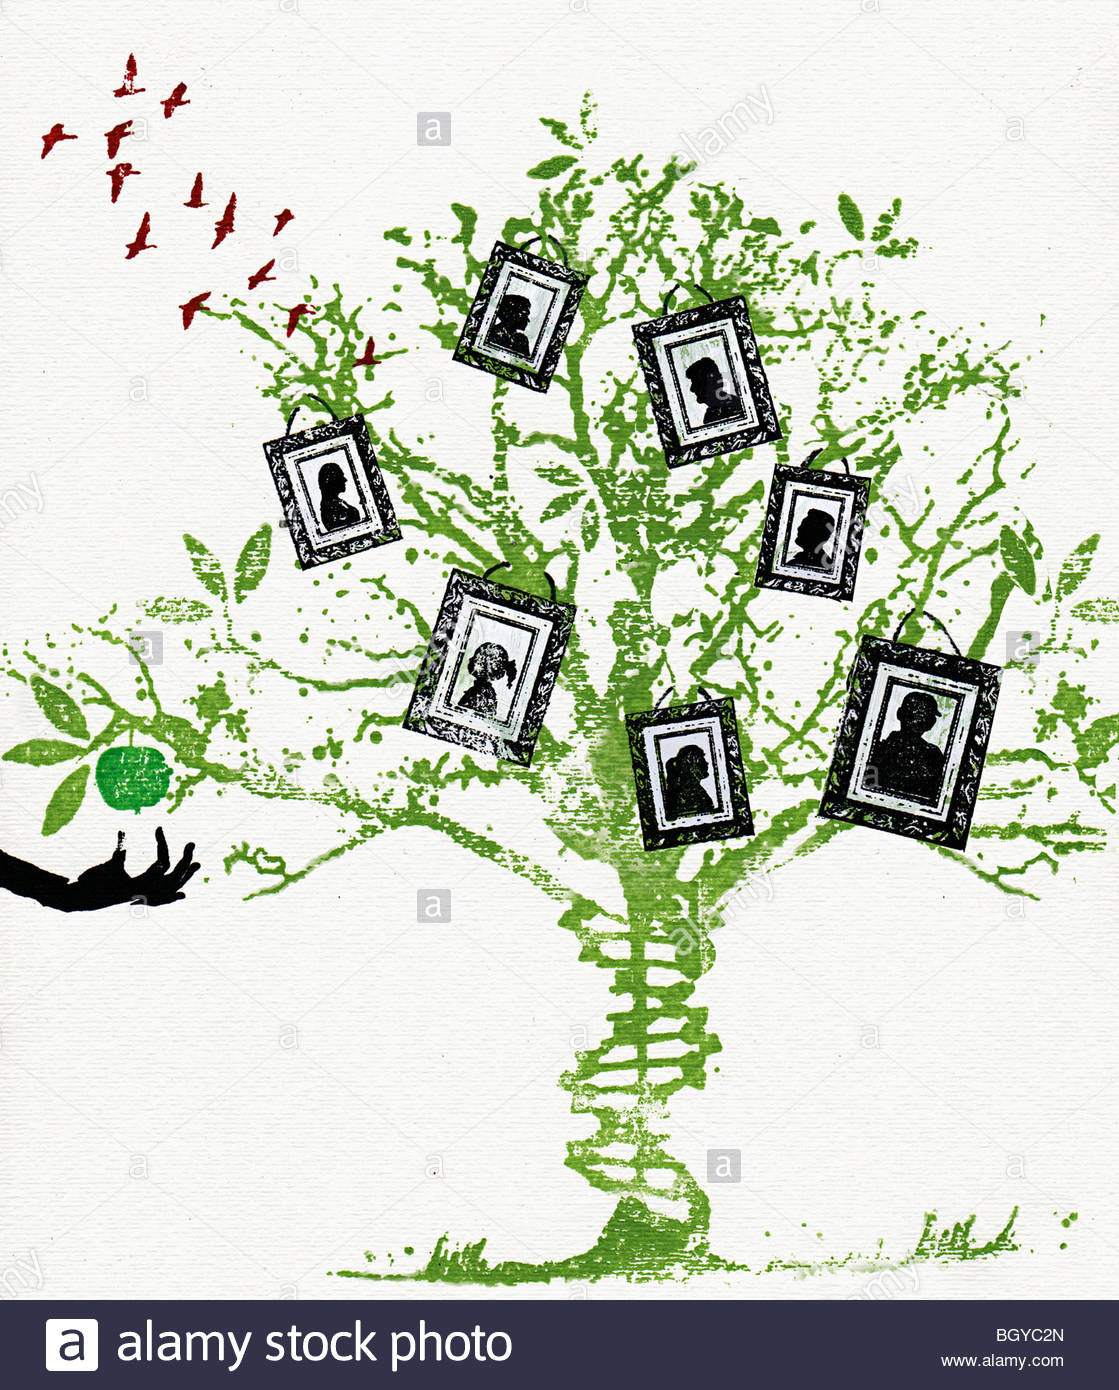 Pictures on family tree - Stock Image